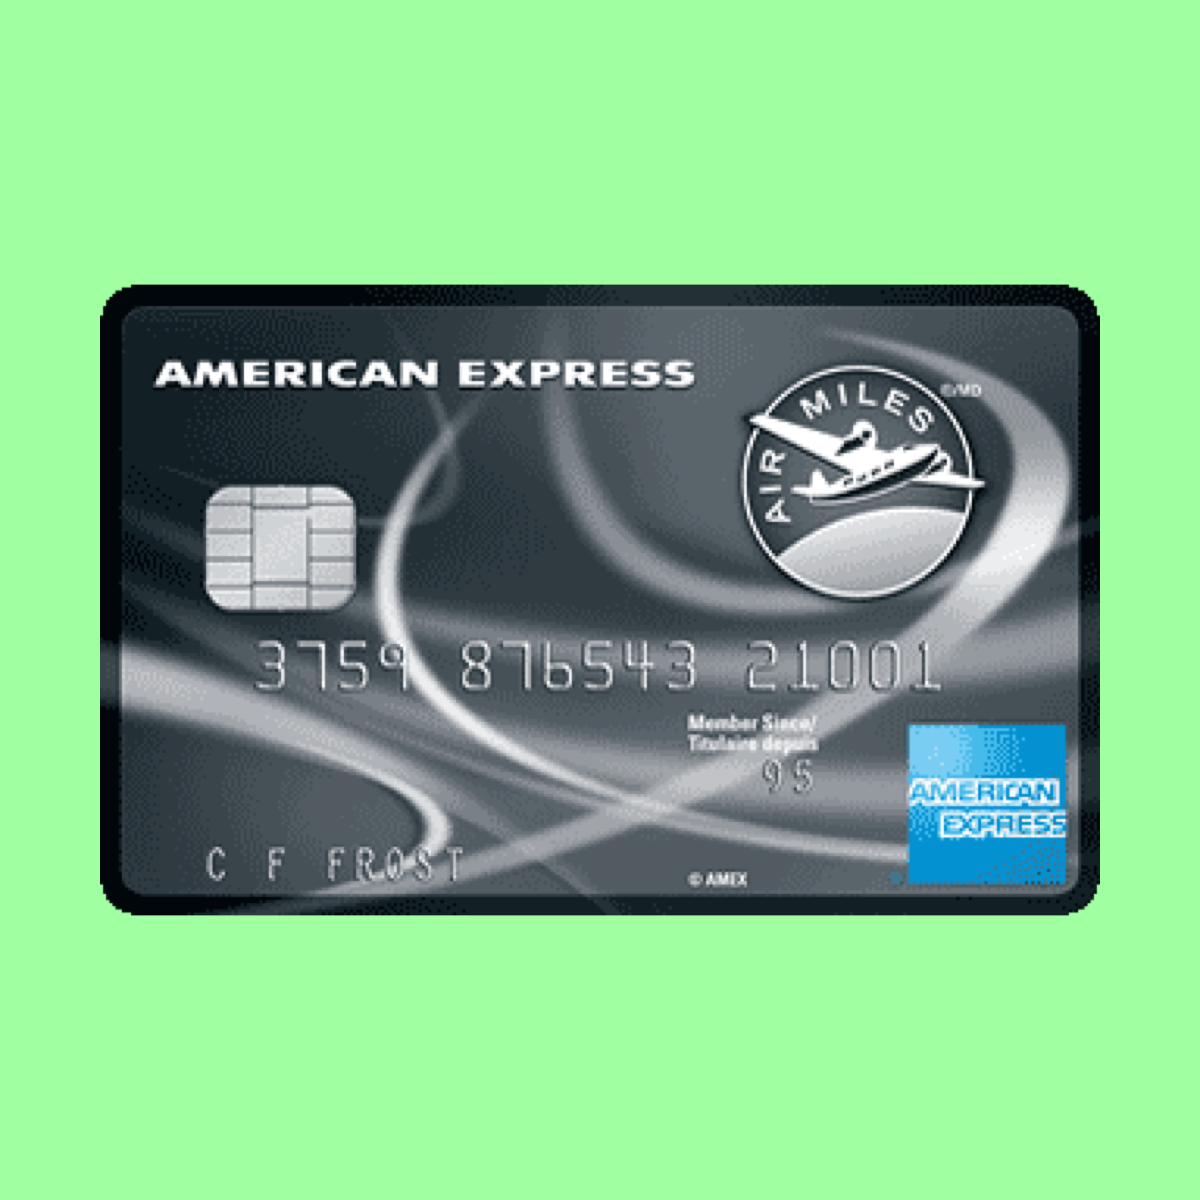 AMEX AIR MILES Reserve Credit Card Cash Value Calculator